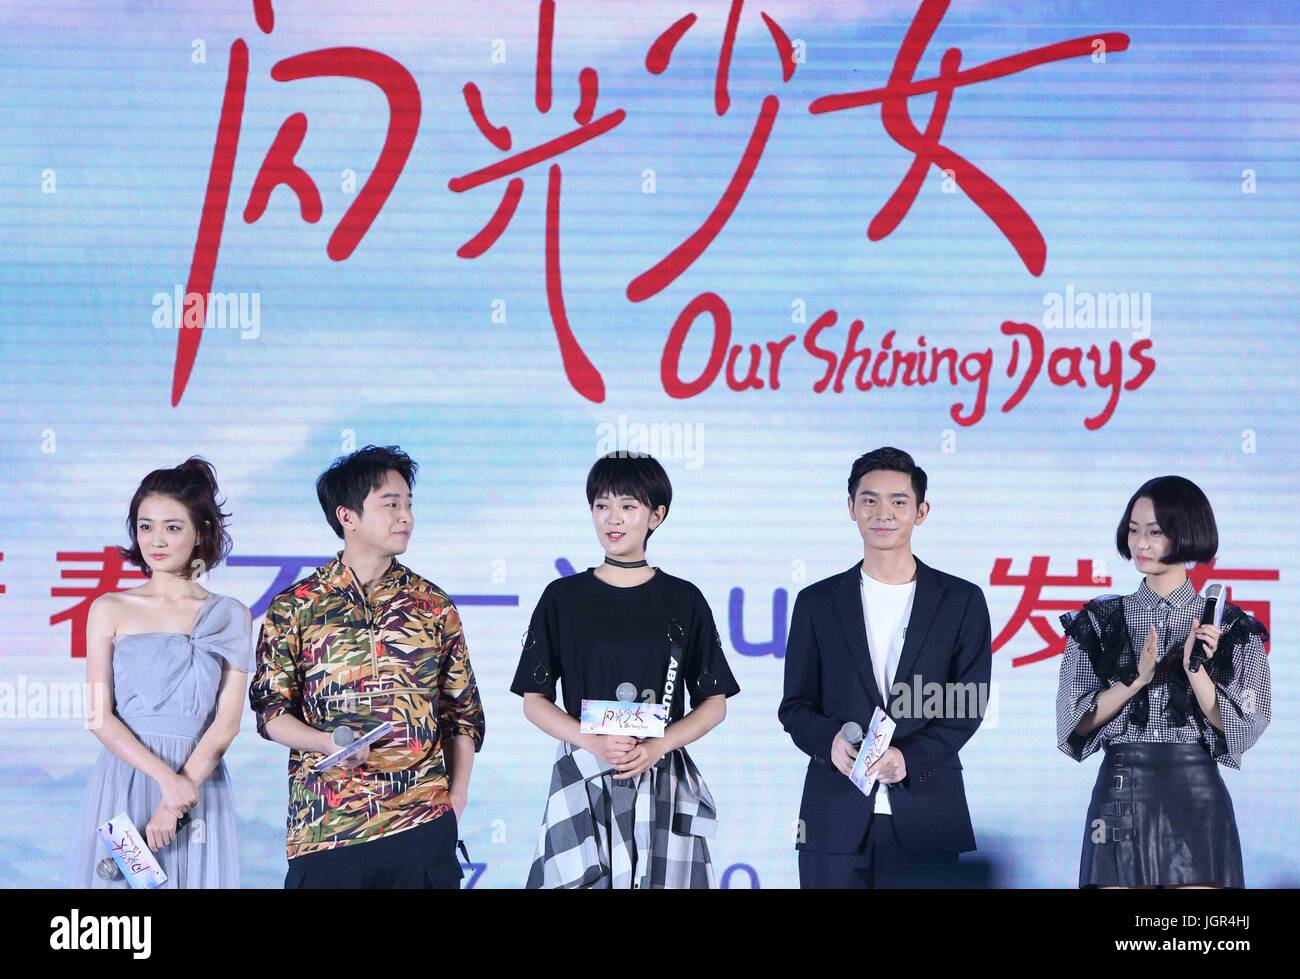 170710 Beijing July 10 2017 Xinhua Cast Members Of Film Our Shining Days Attend A Press Conference In Beijing Capital Of China July 10